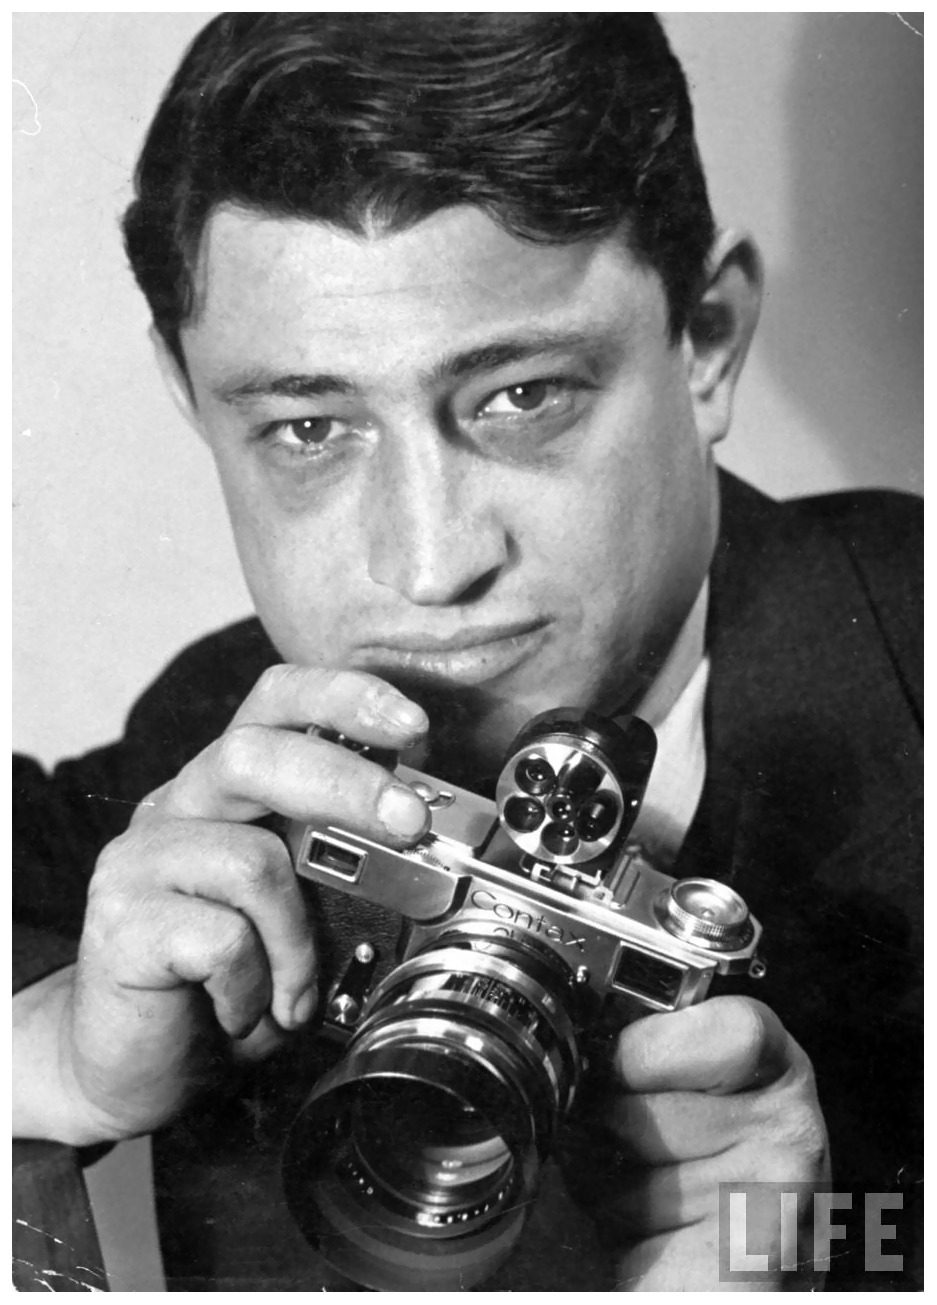 portrat-of-life-photographer-carl-mydans-w-camera-in-hand_bernard-hoffman-1937.jpeg